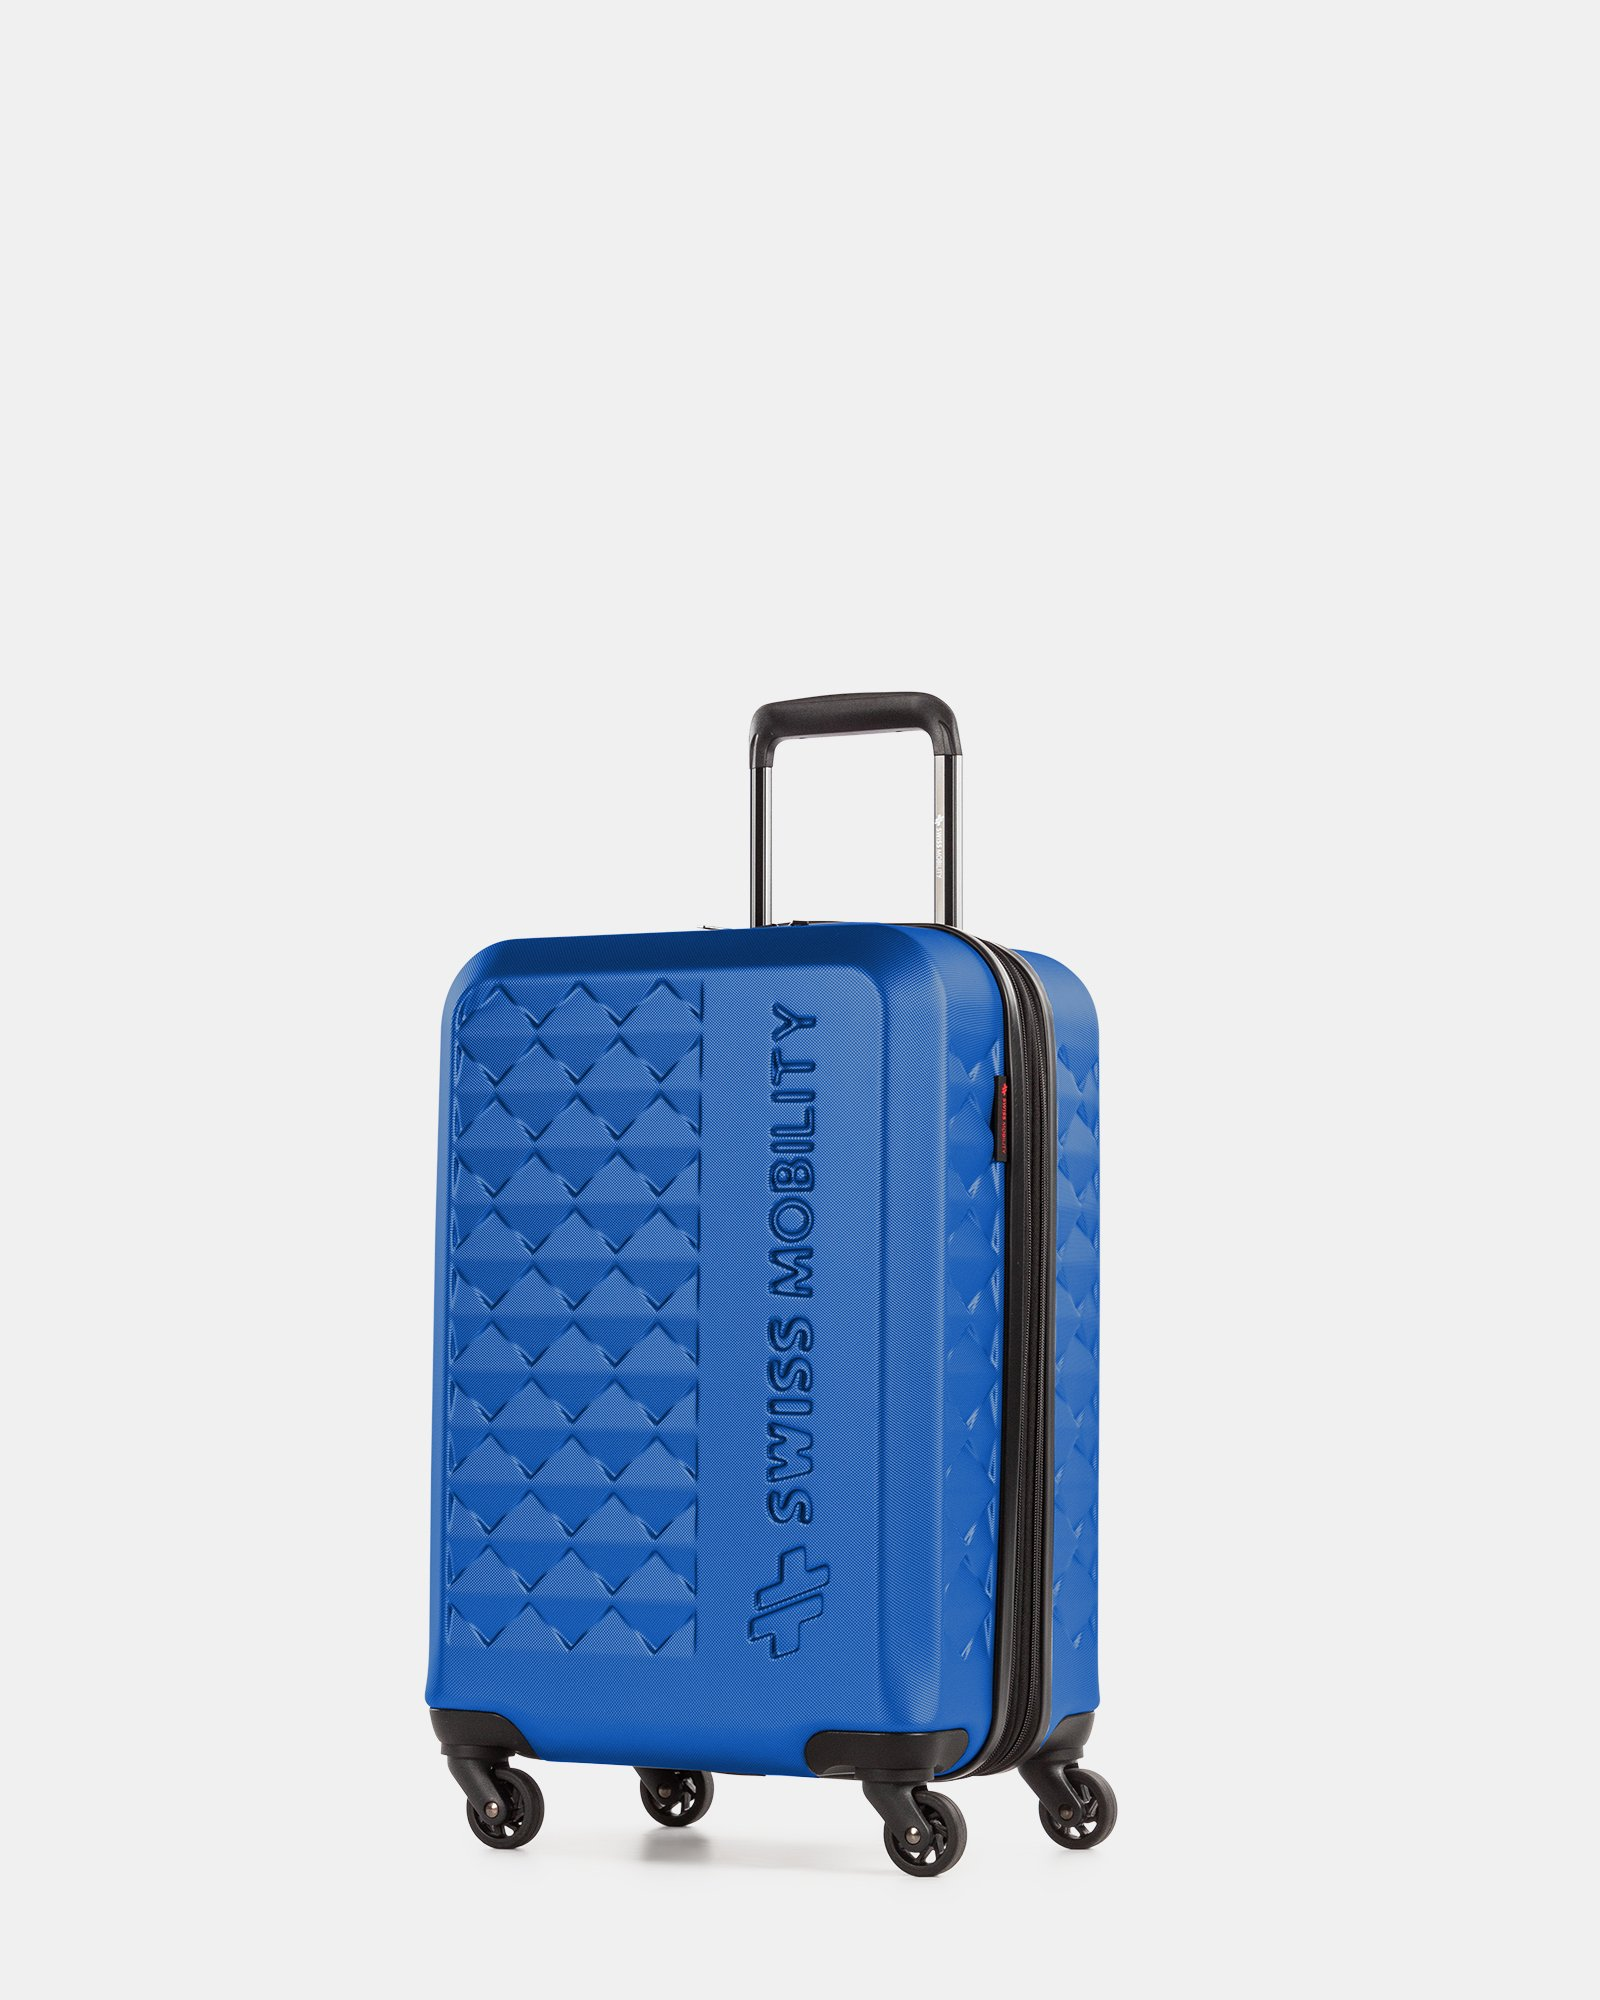 Ridge - Lightweight Hardside Carry-on with Spinner wheels - Blue - Swiss Mobility - Zoom